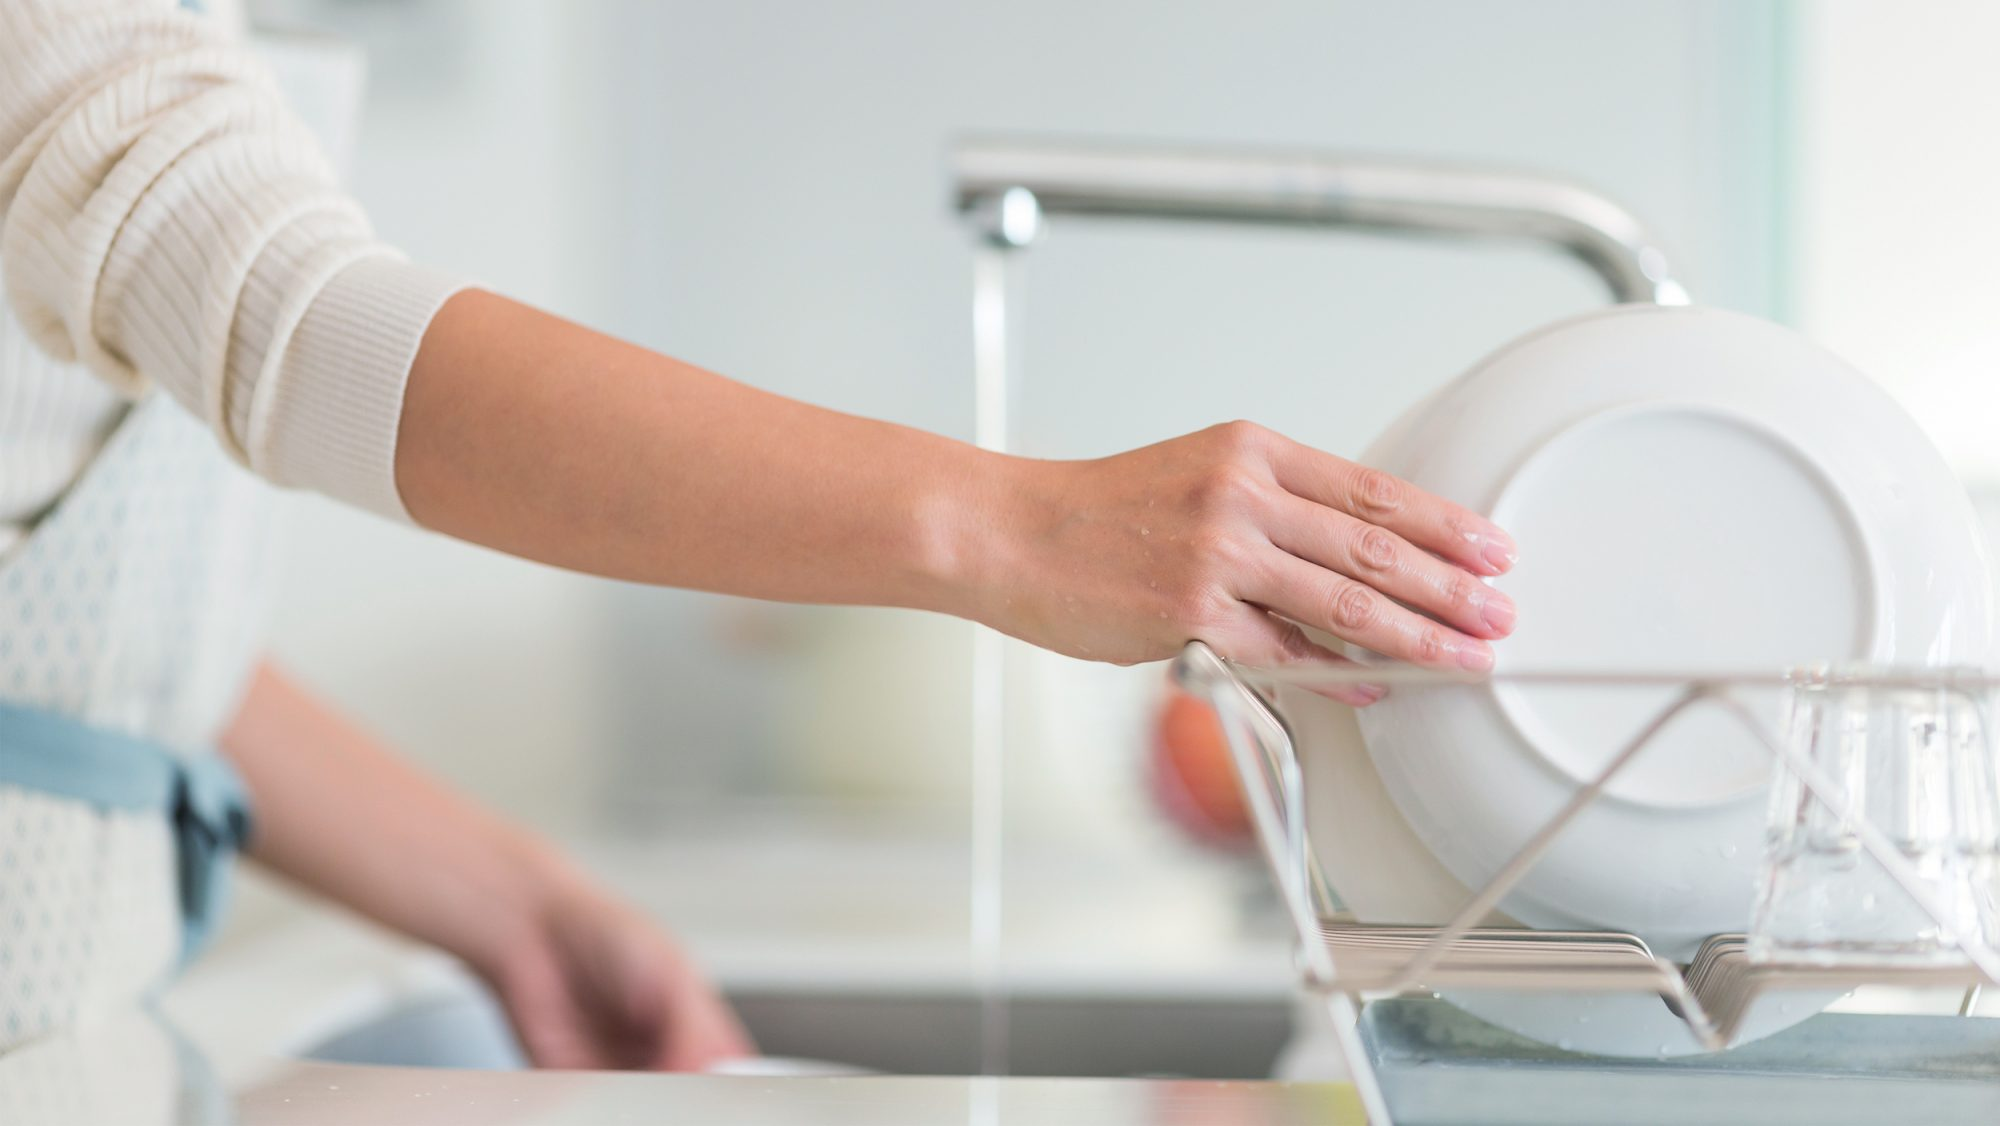 woman doing dishes, dish drying rack